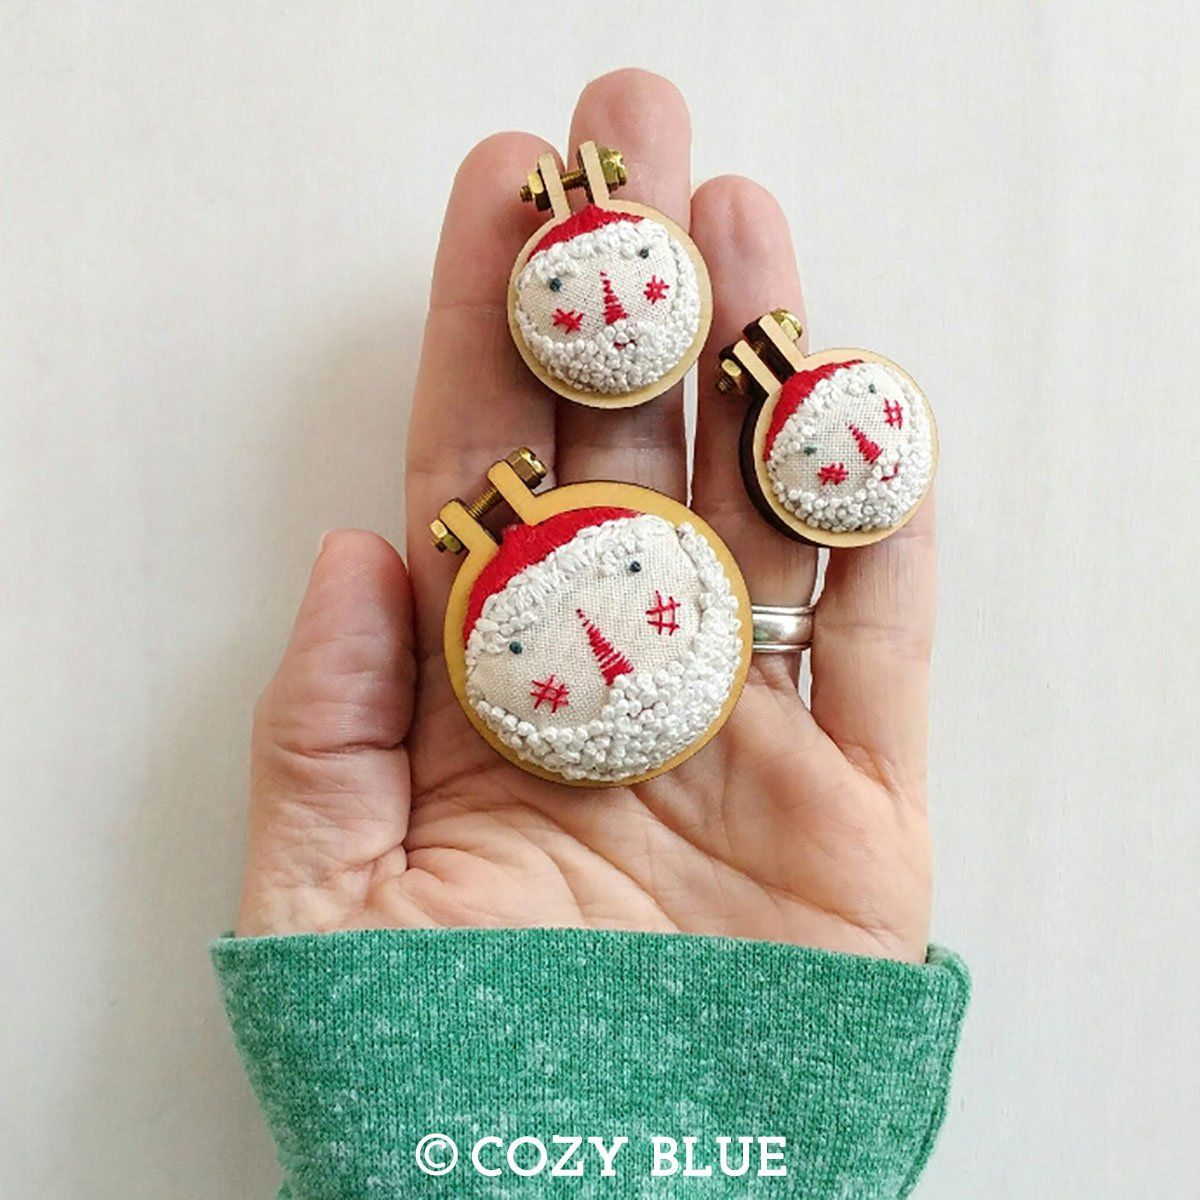 """Class meets: 12/06/17, 6pm - 8pm Stitch an adorable mini Santa to hang on your tree for the holidays! The wee pattern is designed by Liz of Cozyblue Handmade and uses Dandelyne's mini embroidery hoops. Requires a 4-6"""" embroidery hoop for stitching, Dandelyne mini hoop for framing (size 1"""", 1.6"""", or 2.2""""), 1 fat quarter or 1/4 yd of solid fabric, embroidery needles, assorted embroidery floss colors (sample uses red, white, and black) - get 15% off at Fancy Tiger Crafts."""